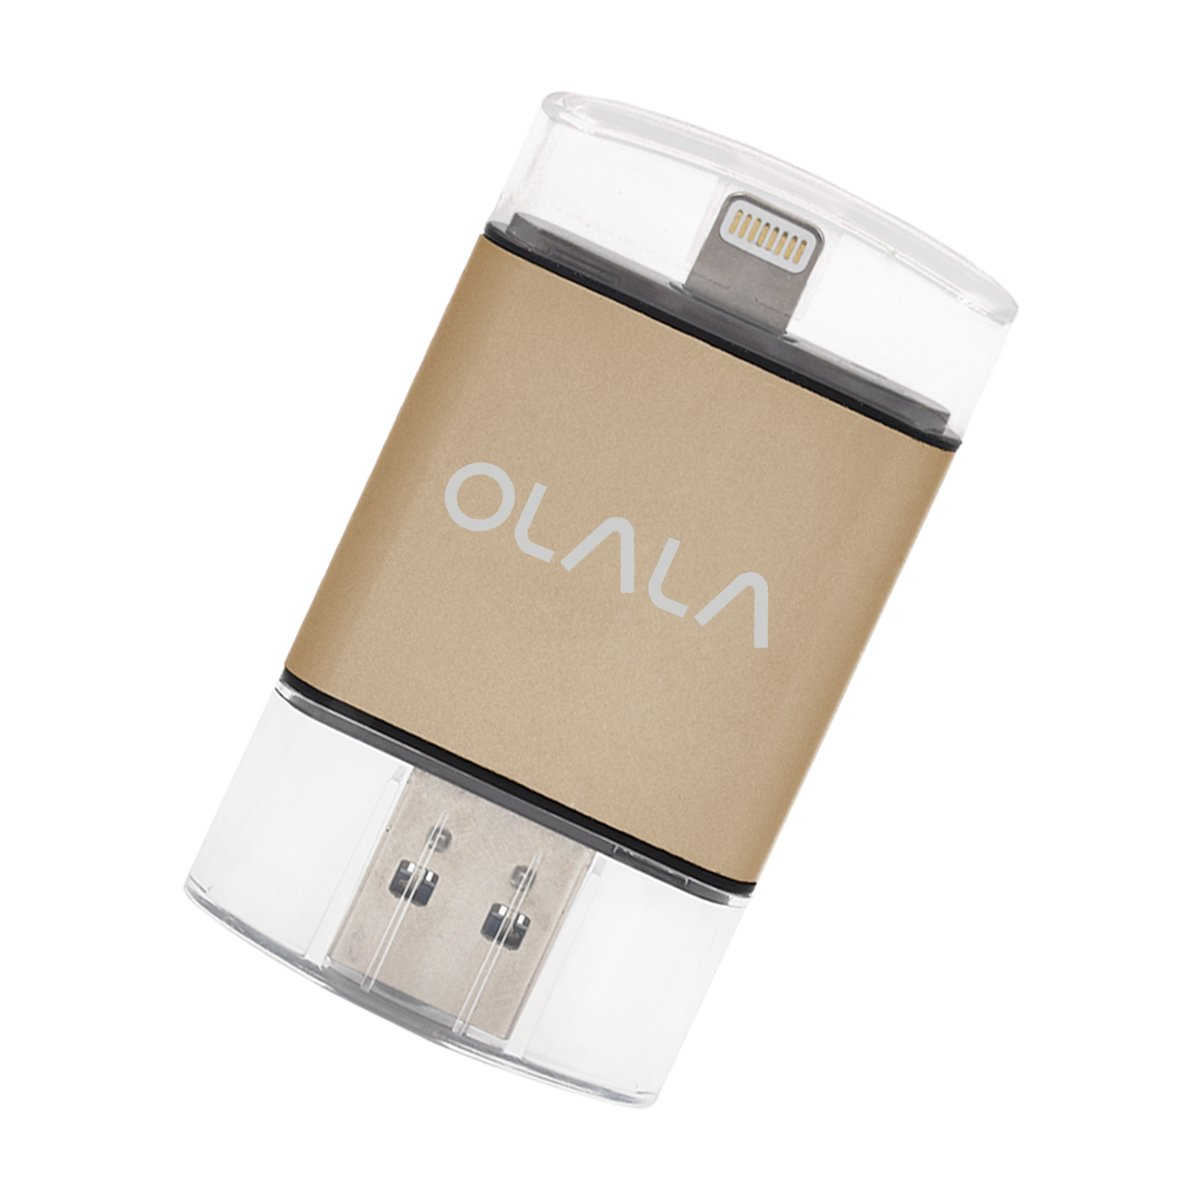 iPhone iPad Flash Drive 64GB USB 3.0 Memory Stick with [Apple MFi Certified] Lightning Connector for iPod iOS Windows Mac, OLALA ID101 External Storage Expansion (Golden)